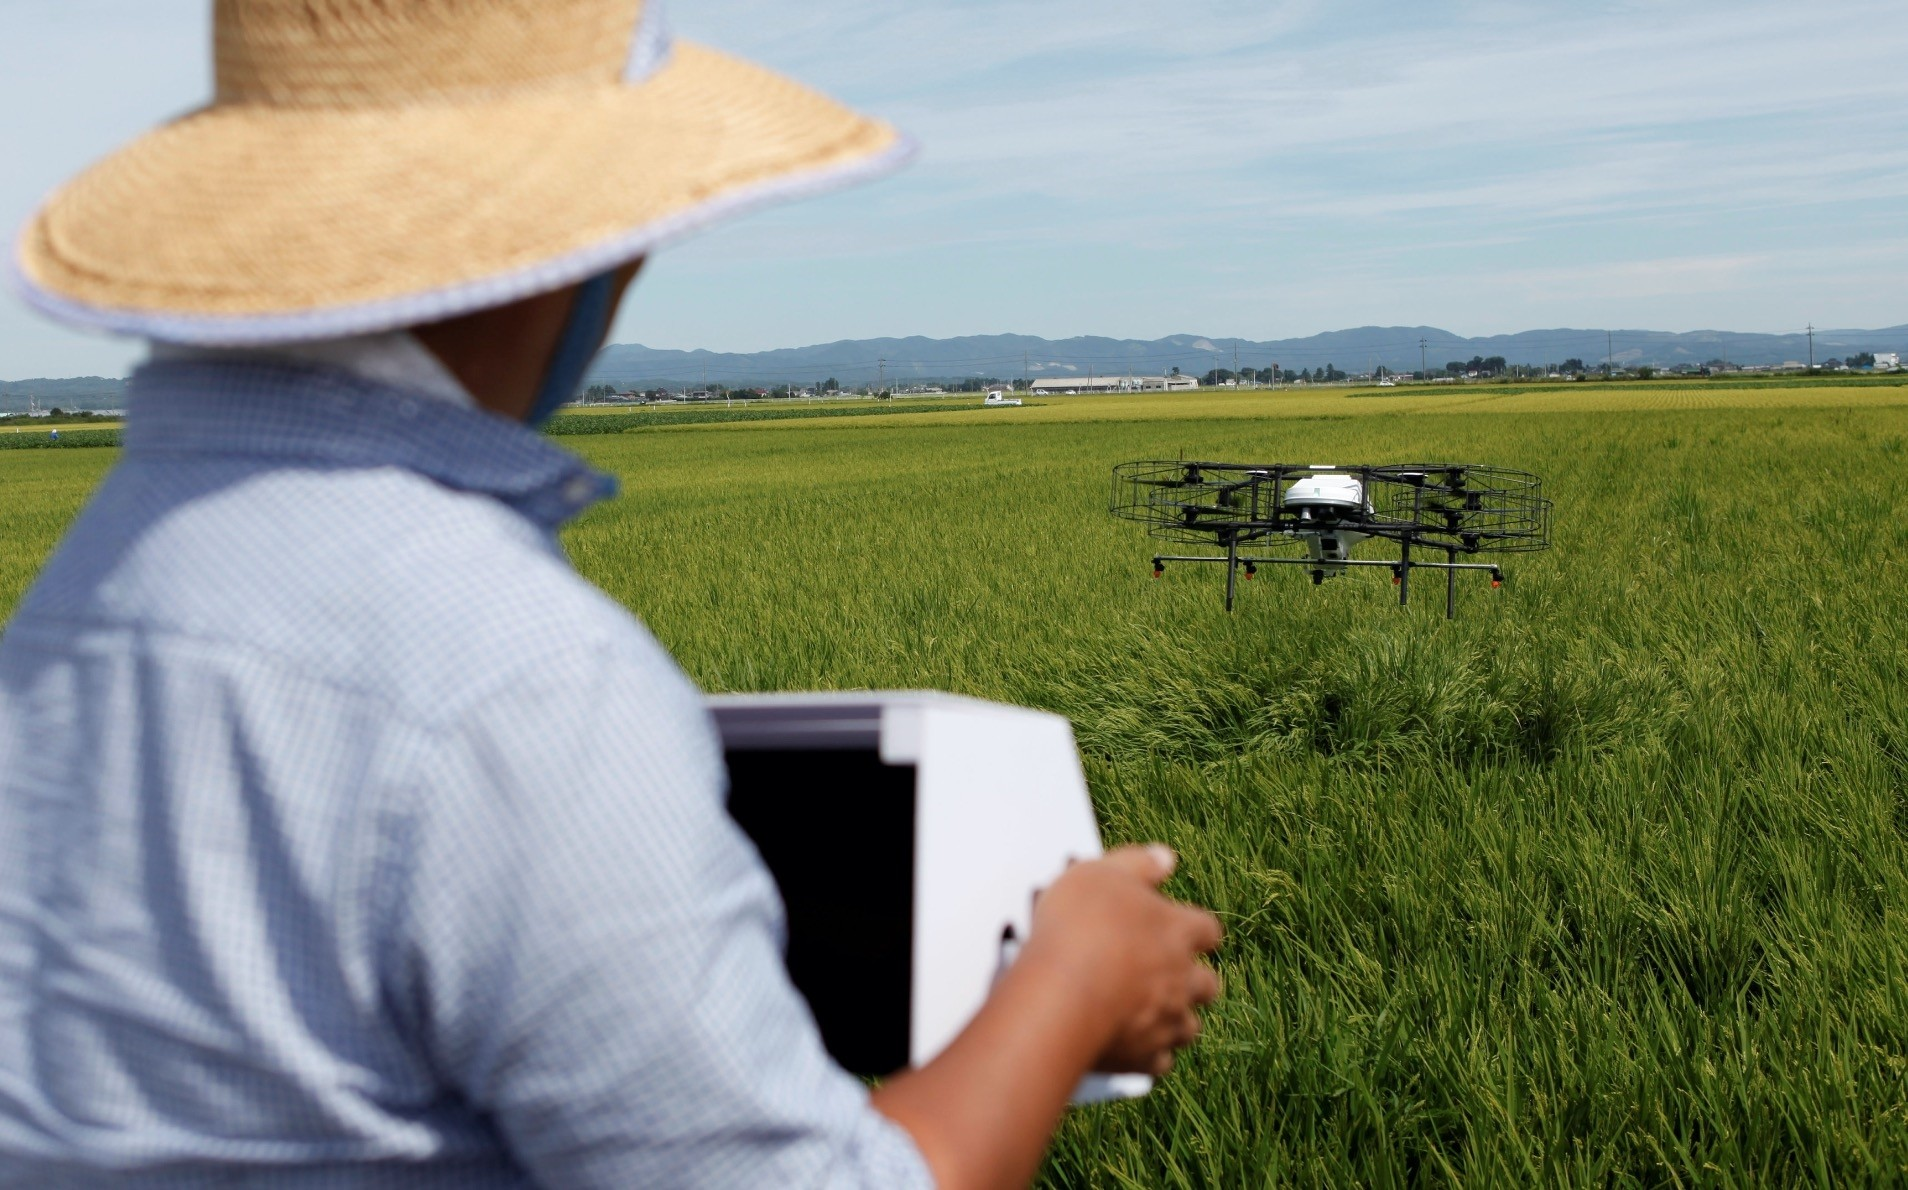 Nileworks Inc.u2019s automated drone flies over rice plants, spraying pesticide while diagnosing growth of individual rice stalks, during a demonstration in Tome, Miyagi prefecture, Aug. 20.